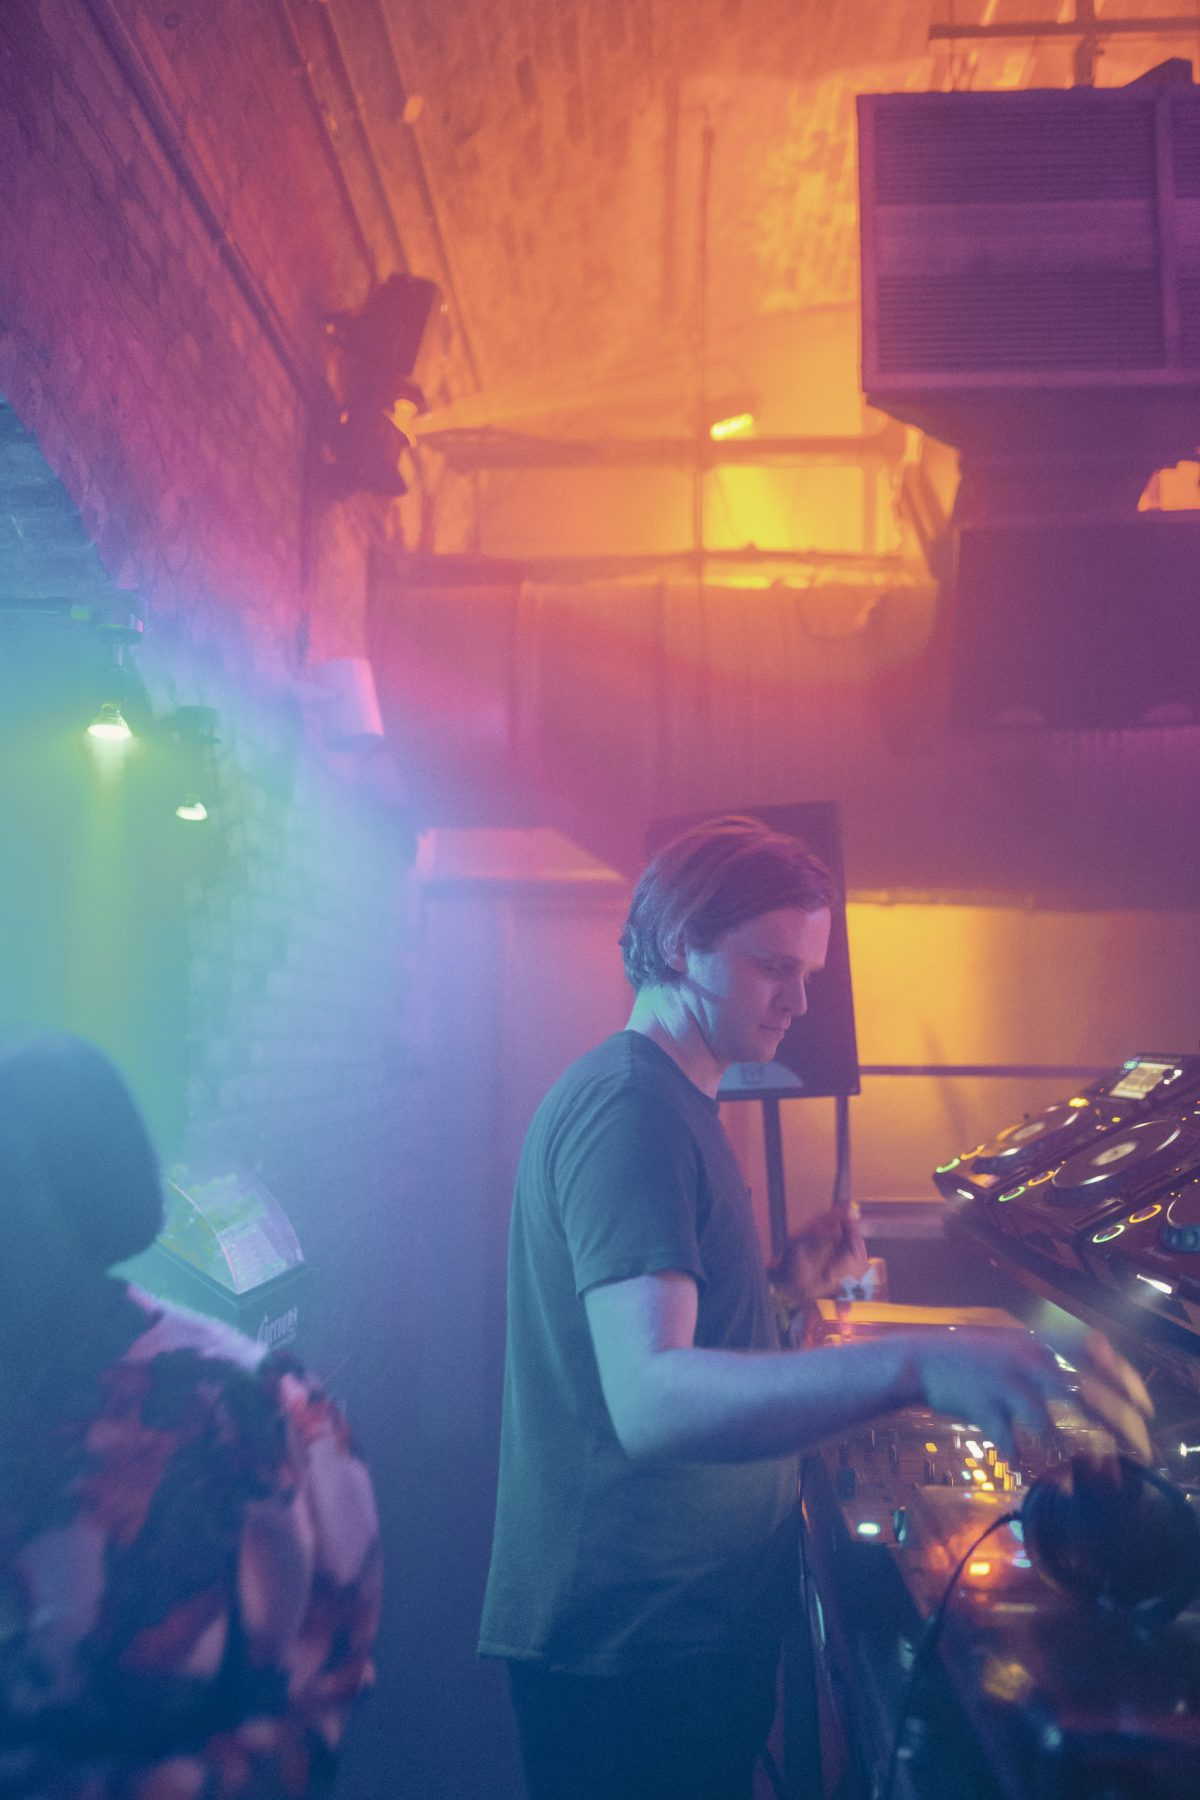 fabric   28.10.2017 by Danny Seaton